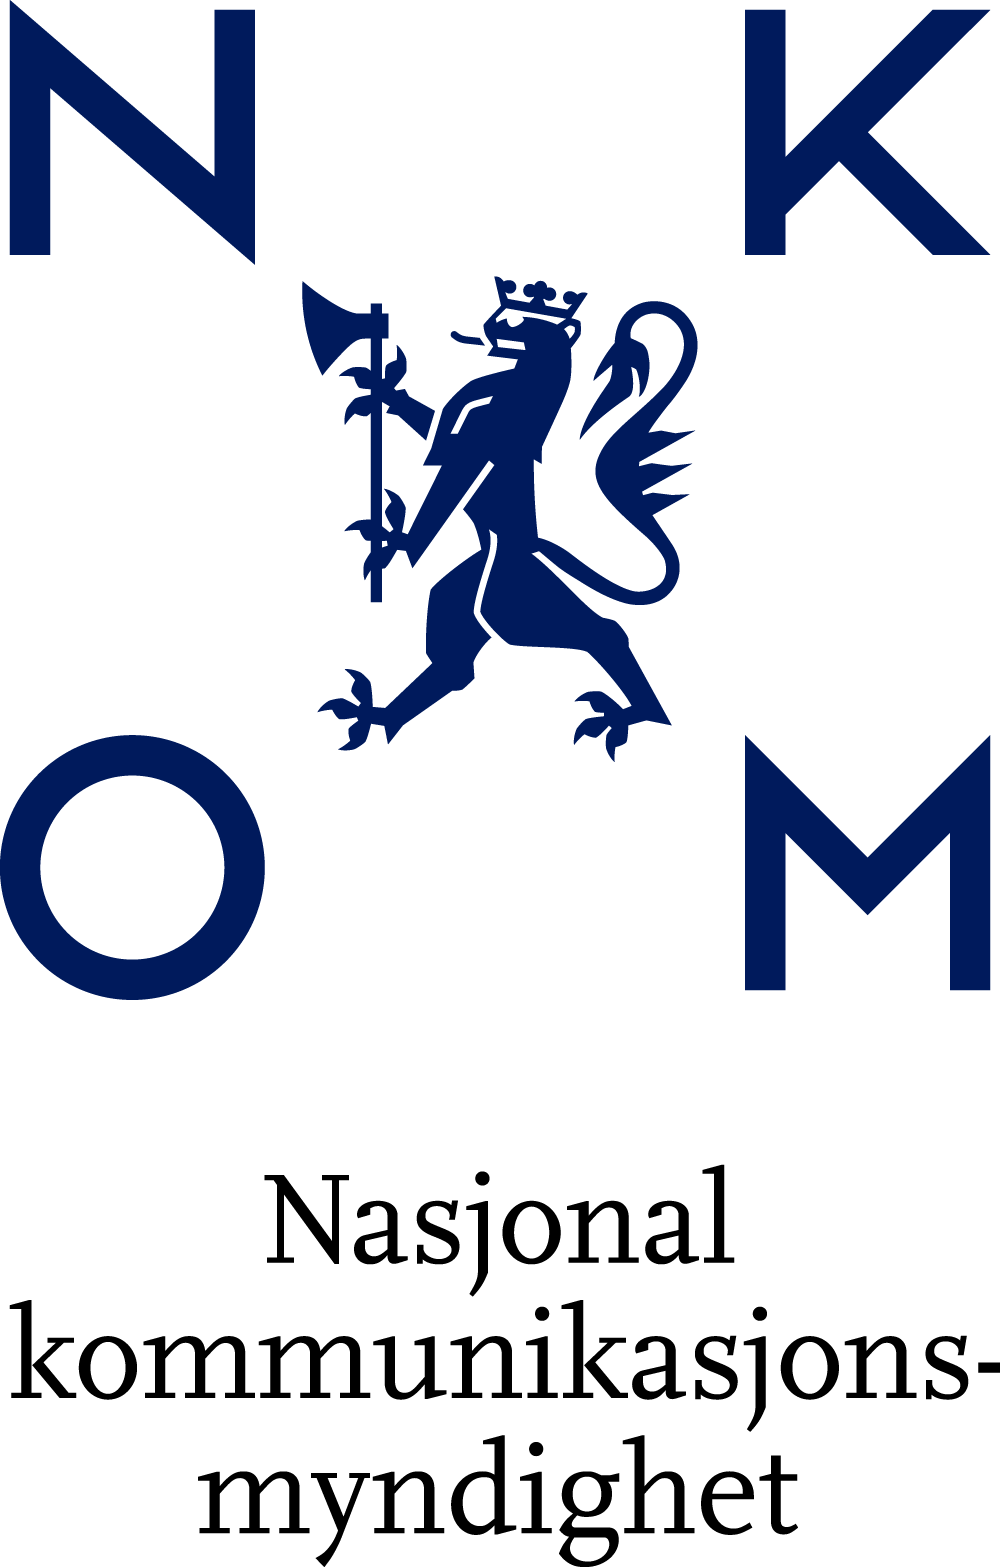 New Name and Logo for NKOM by Op designstudio